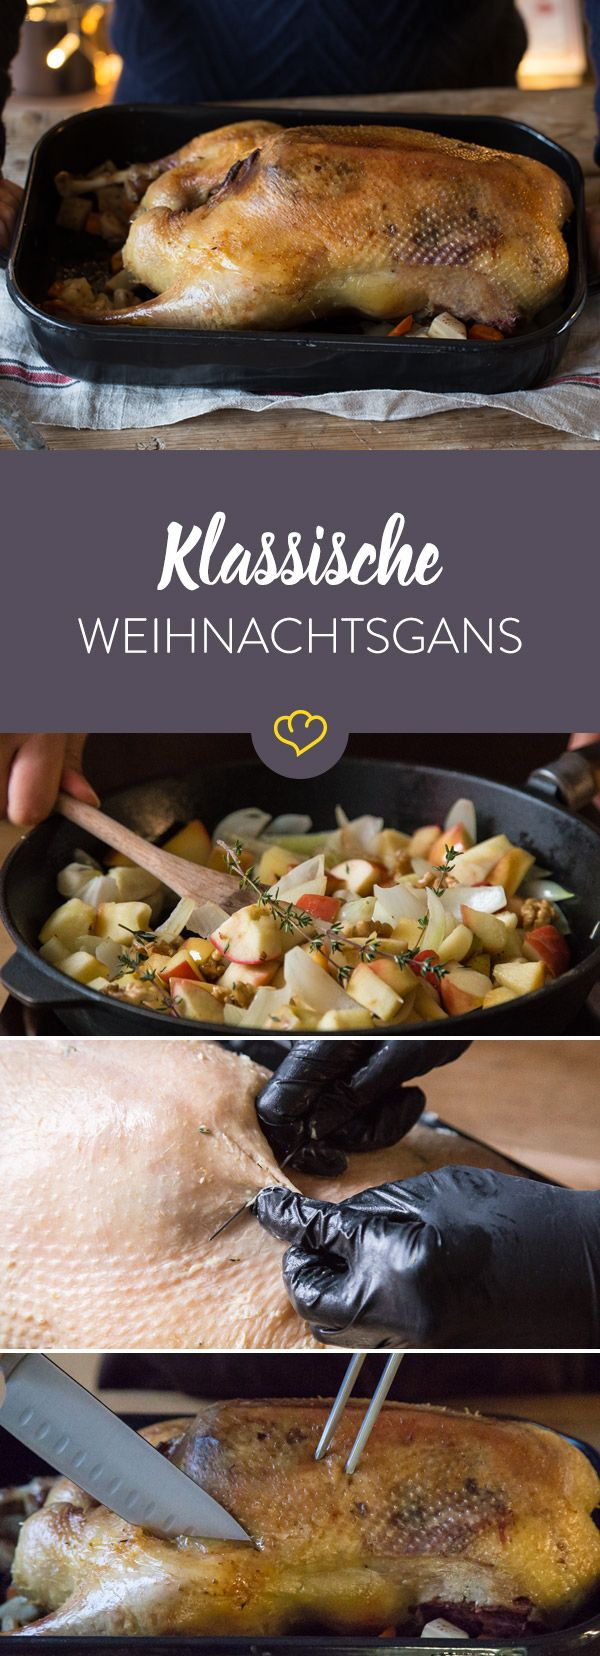 7 best Gänsebraten images on Pinterest | Xmas, Christmas meals and ...